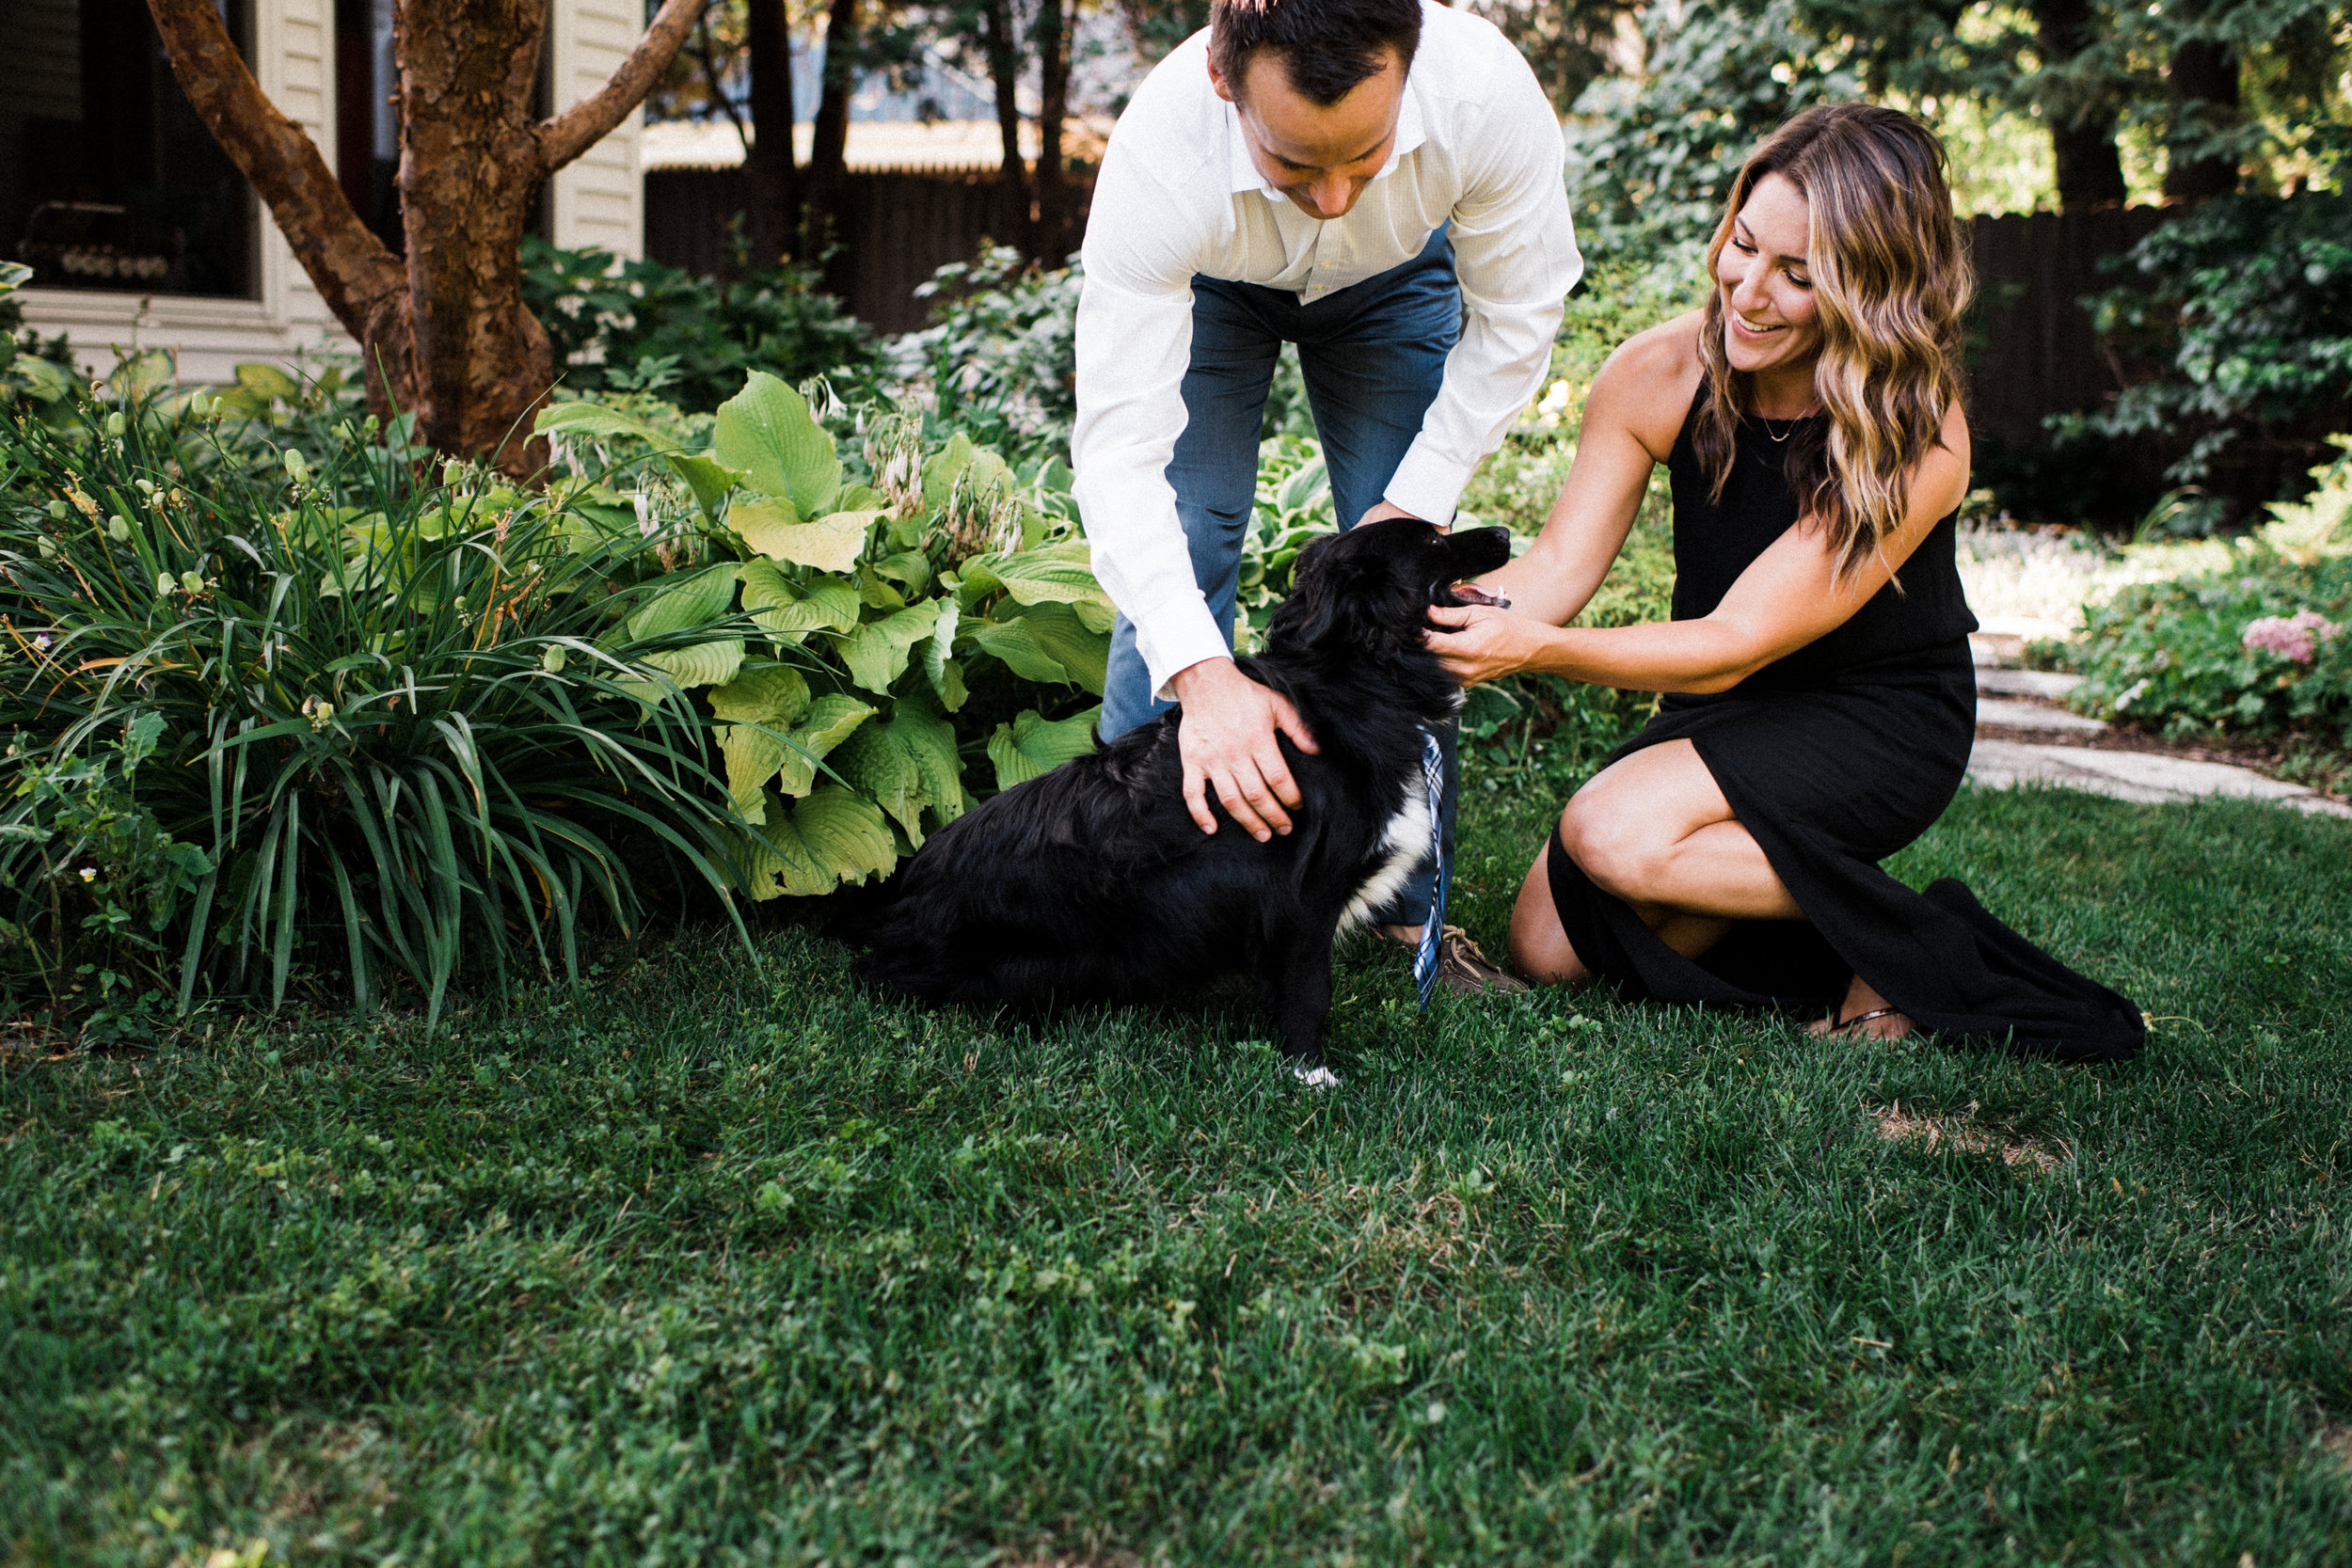 Engaged couple playing with their dog in the backyard.